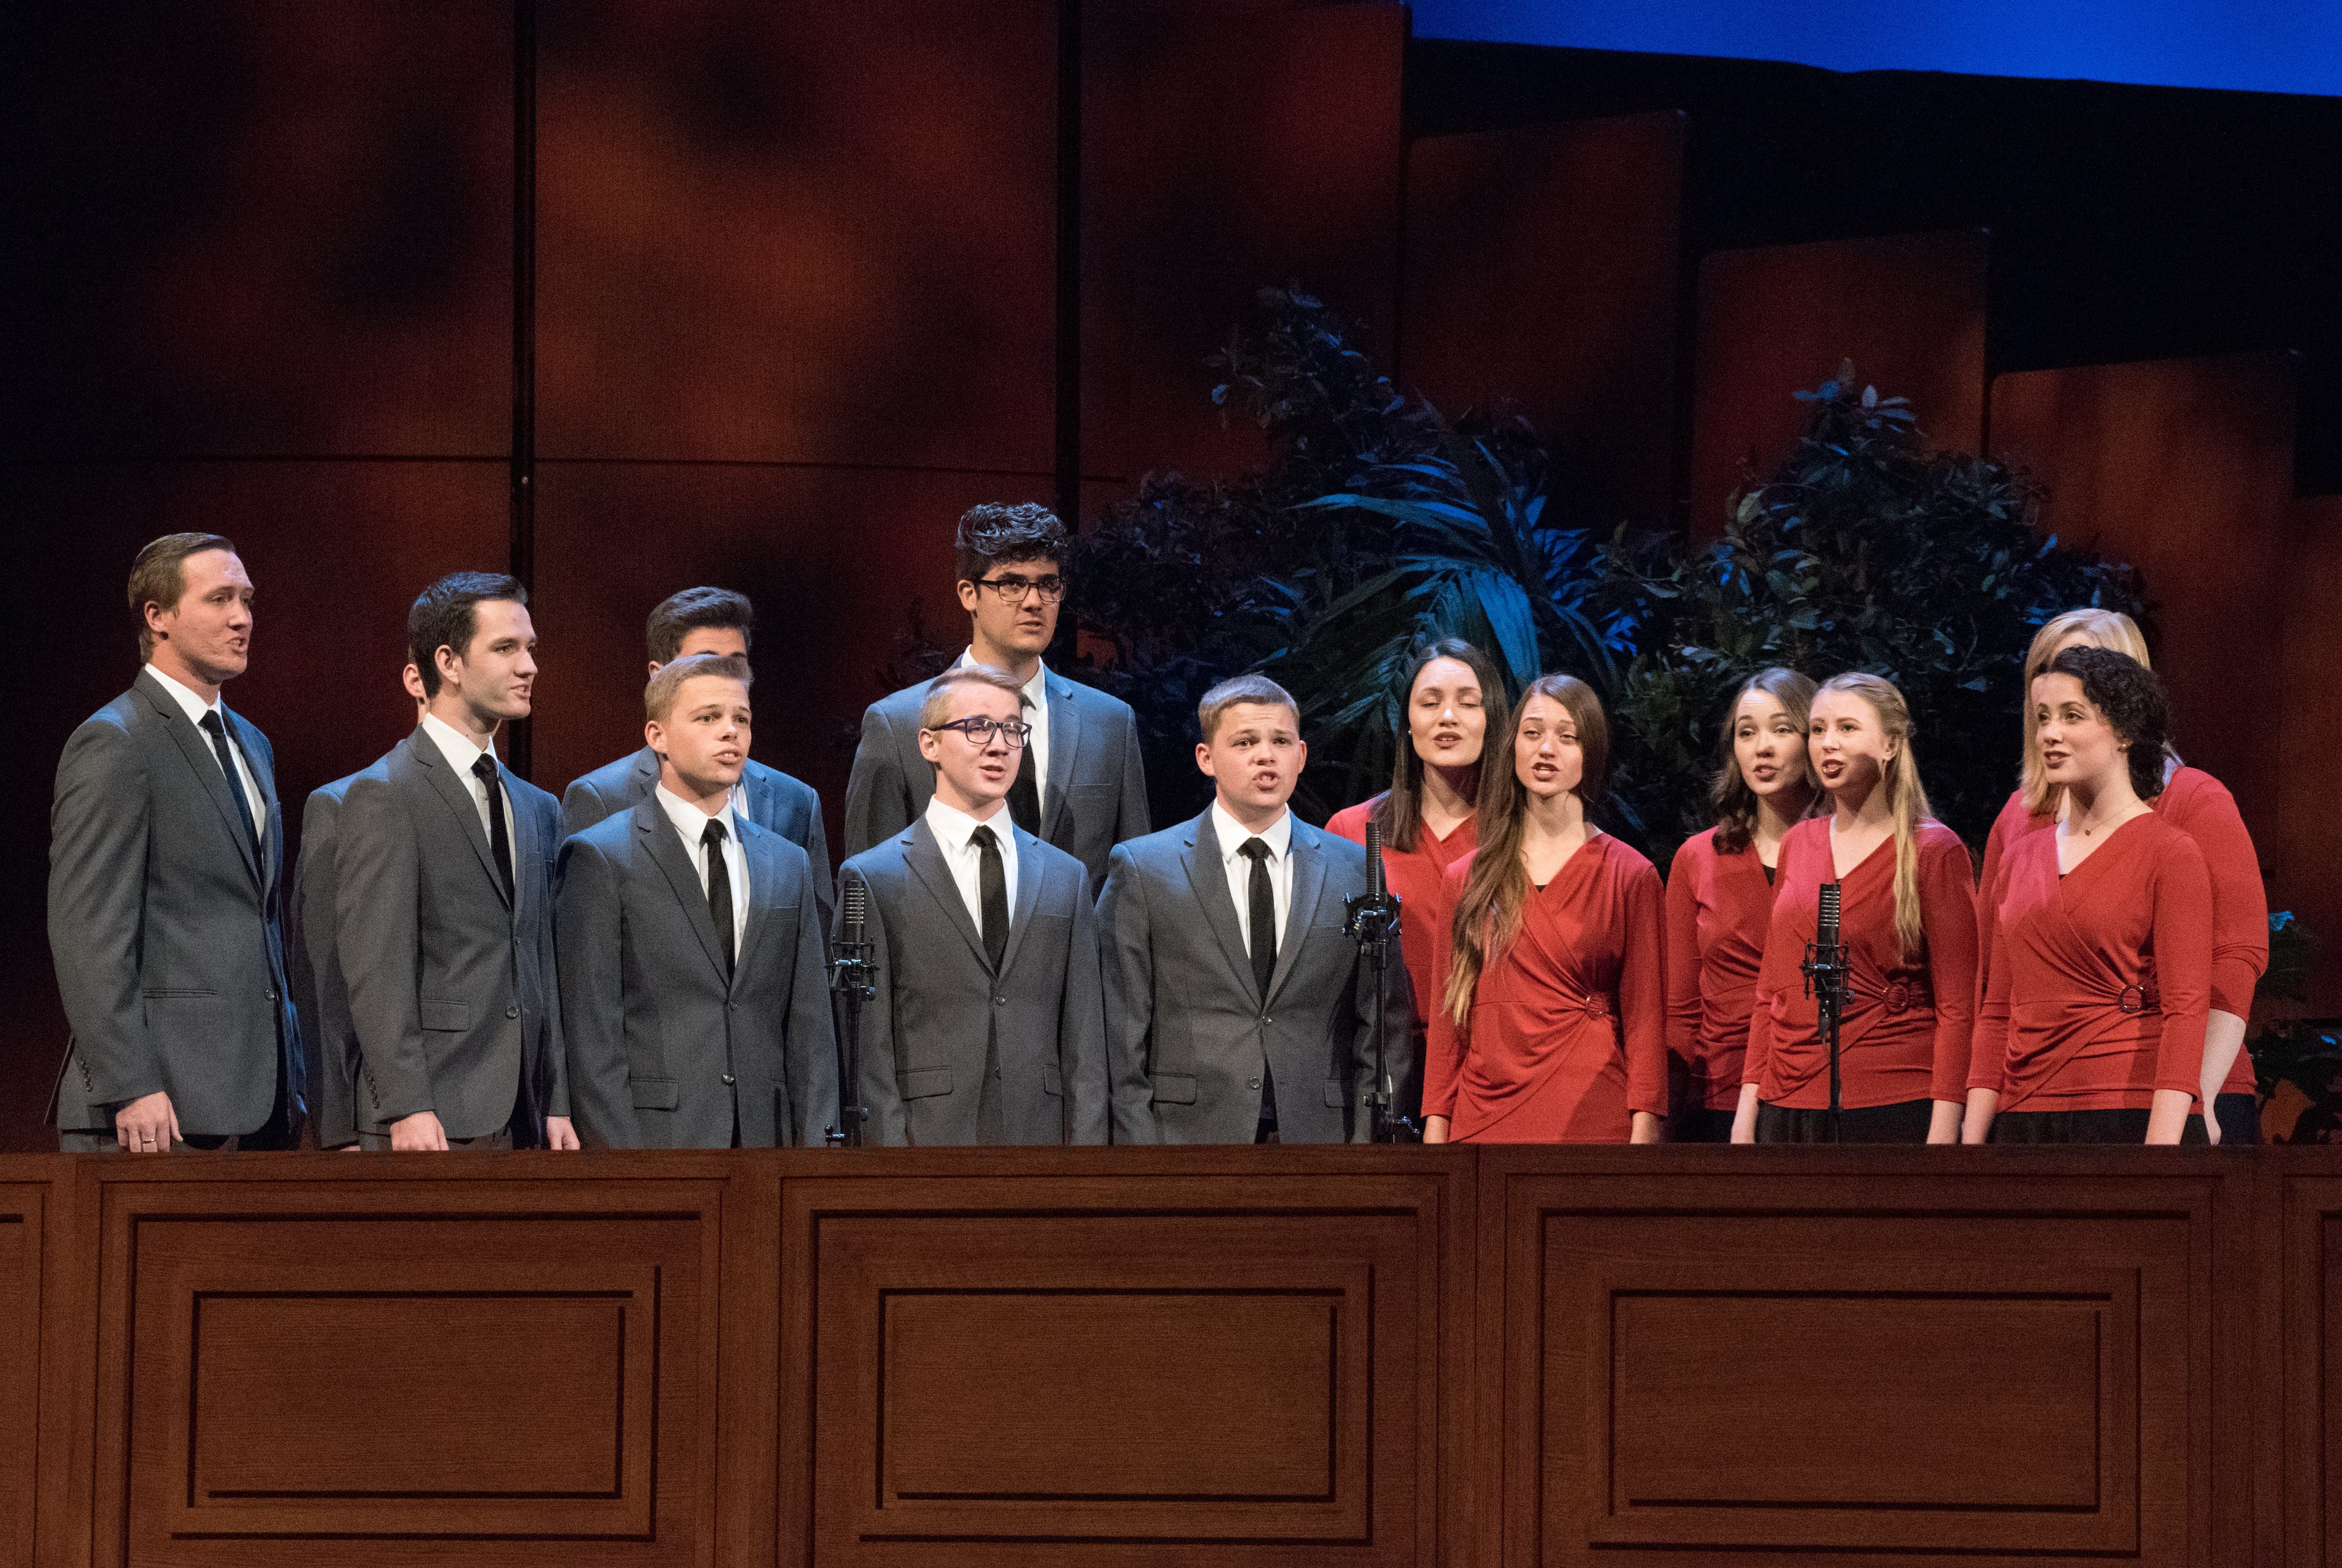 Vocal Union, a singing group at BYU-Idaho, performs during the campus devotional on Sept. 25.